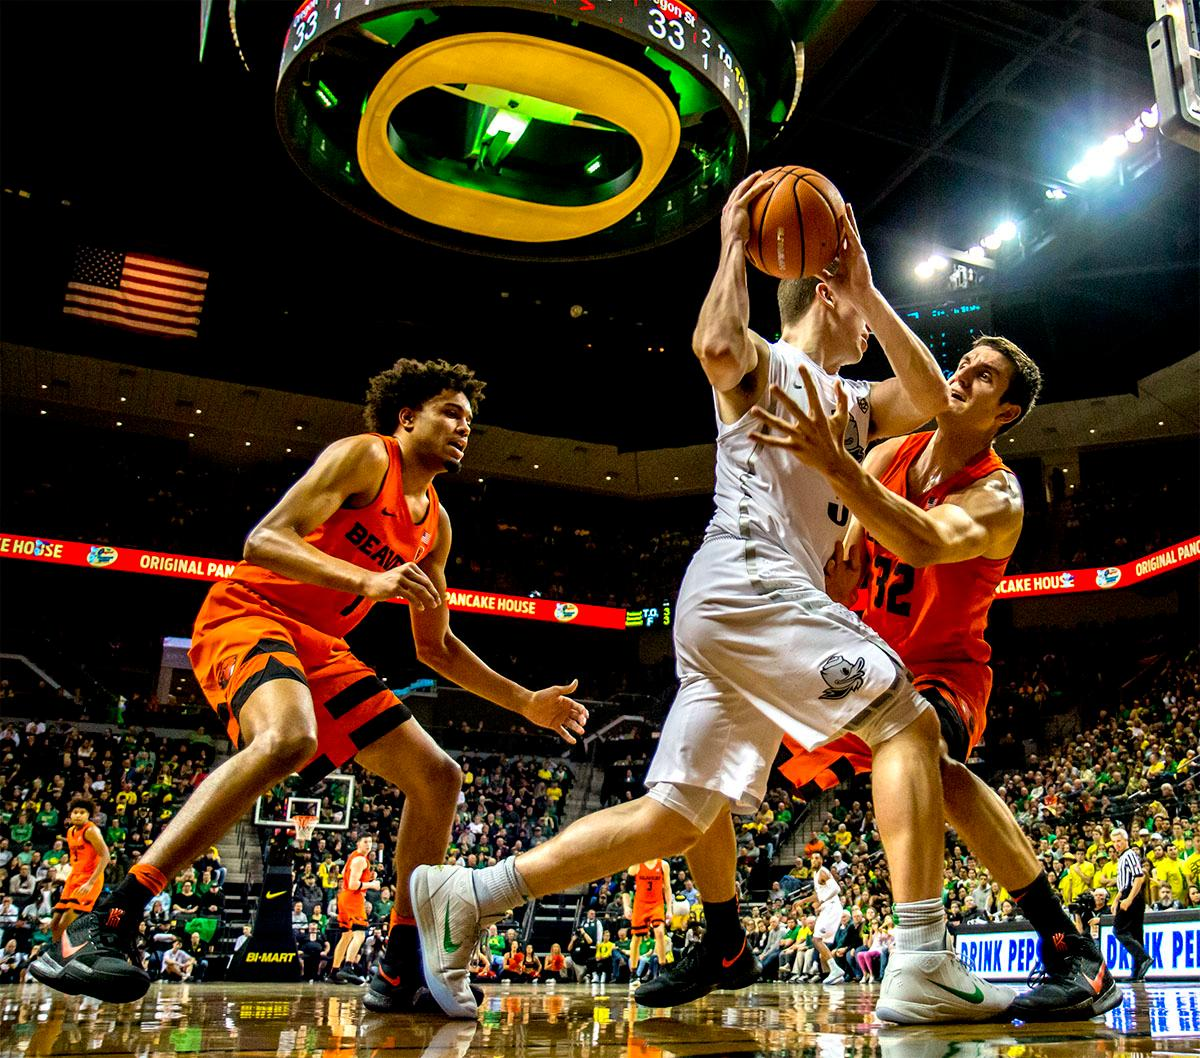 The Beaver's Seth Berger (#32) attempts to steal the ball from the Duck's Payton Pritchard (#3). The Ducks defeated the Beavers in the civil war game, 66-57, at Matthew Knight Arena on Saturday night. Elijah Brown scored a game high of 20 points with 18 of the points coming in the first half, Paul White added 17 points. The Ducks are now 14-7 overall and 4-4 in conference play. The Ducks will next face California on Thursday Feb. 1 at 6:00 p.m. Photo by August Frank, Oregon News Lab